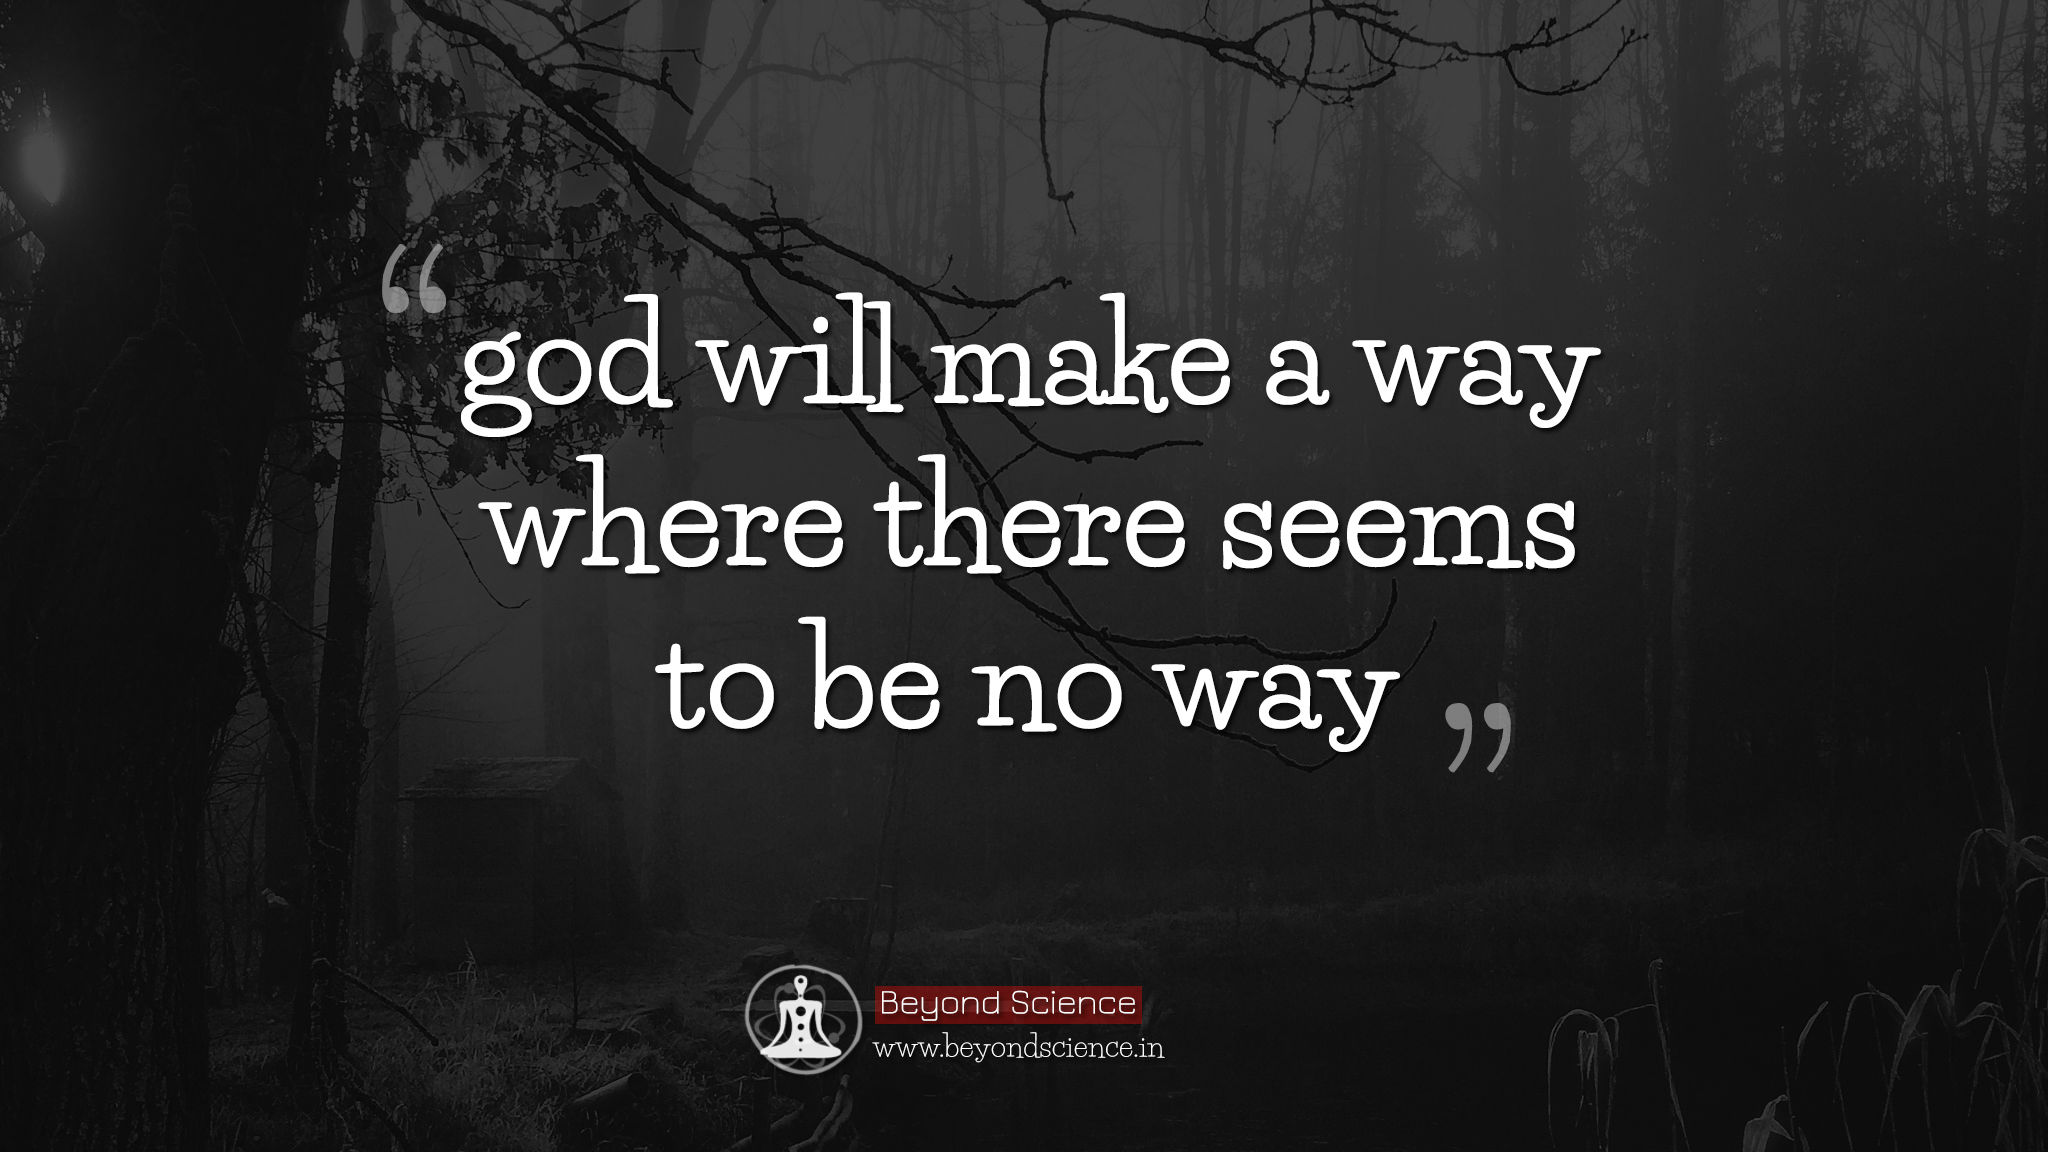 god will make a way where there seems to be no way